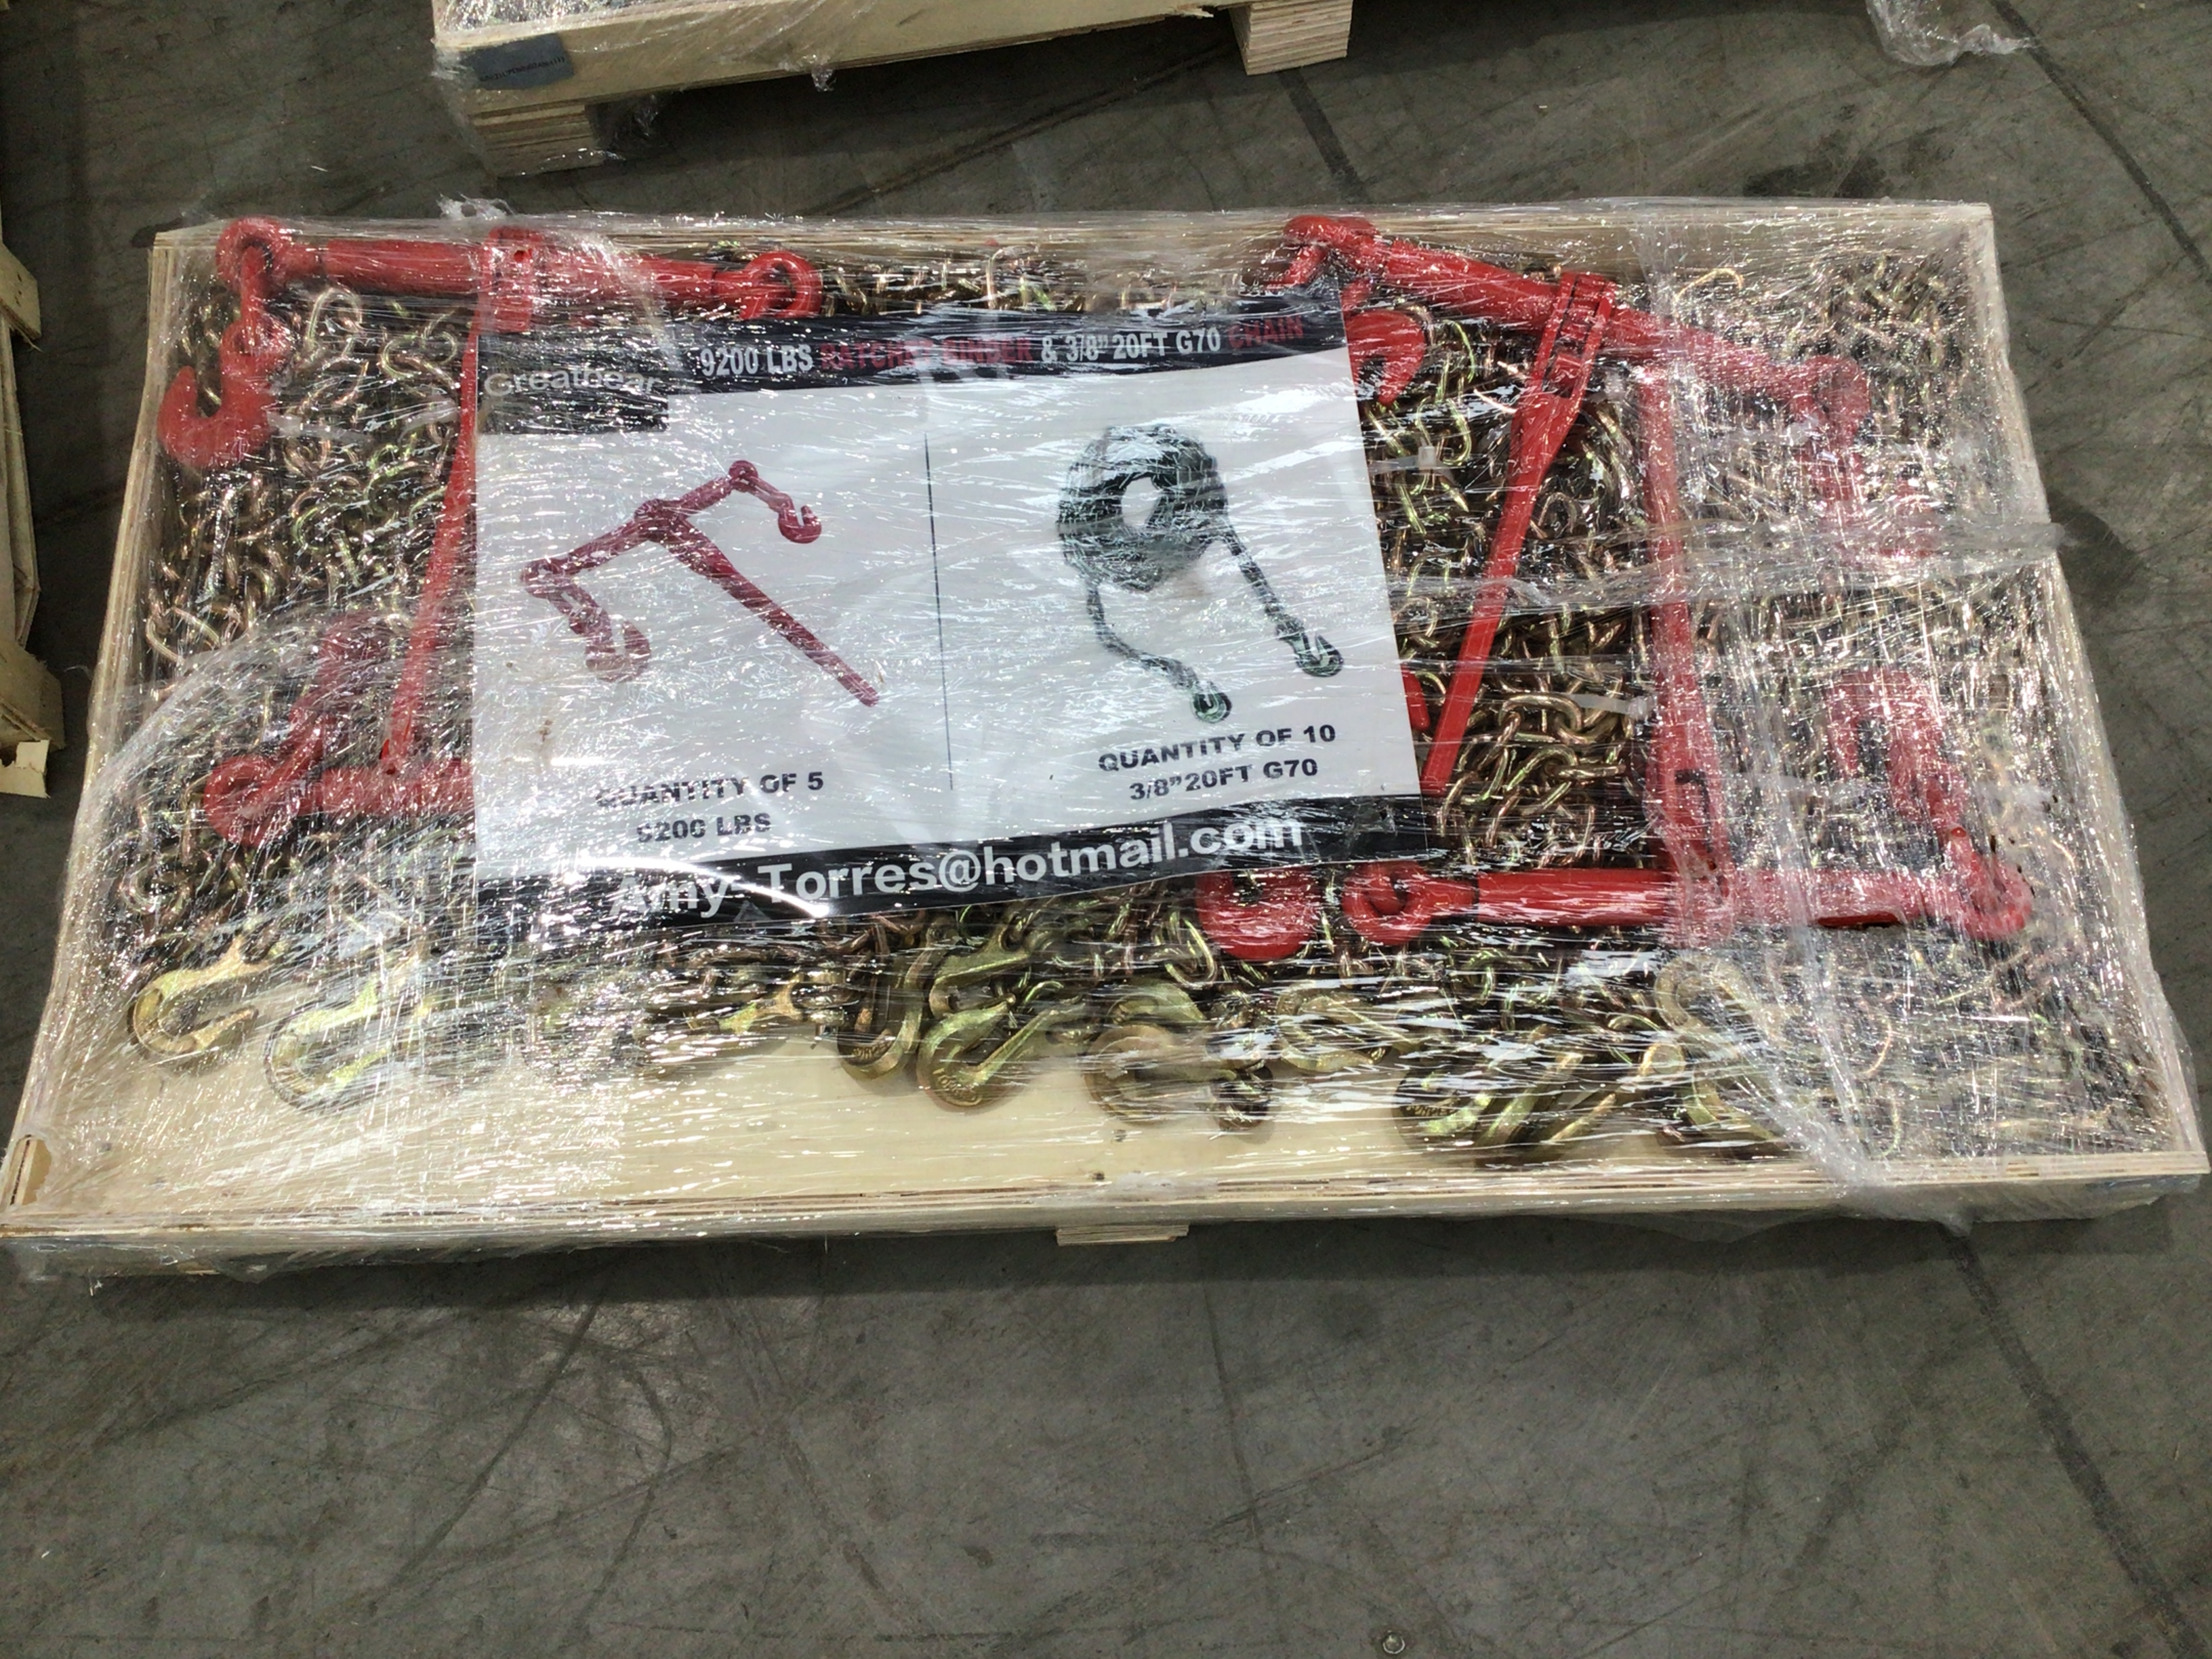 Unused 9200 LBS Ratchet Binders and Chains